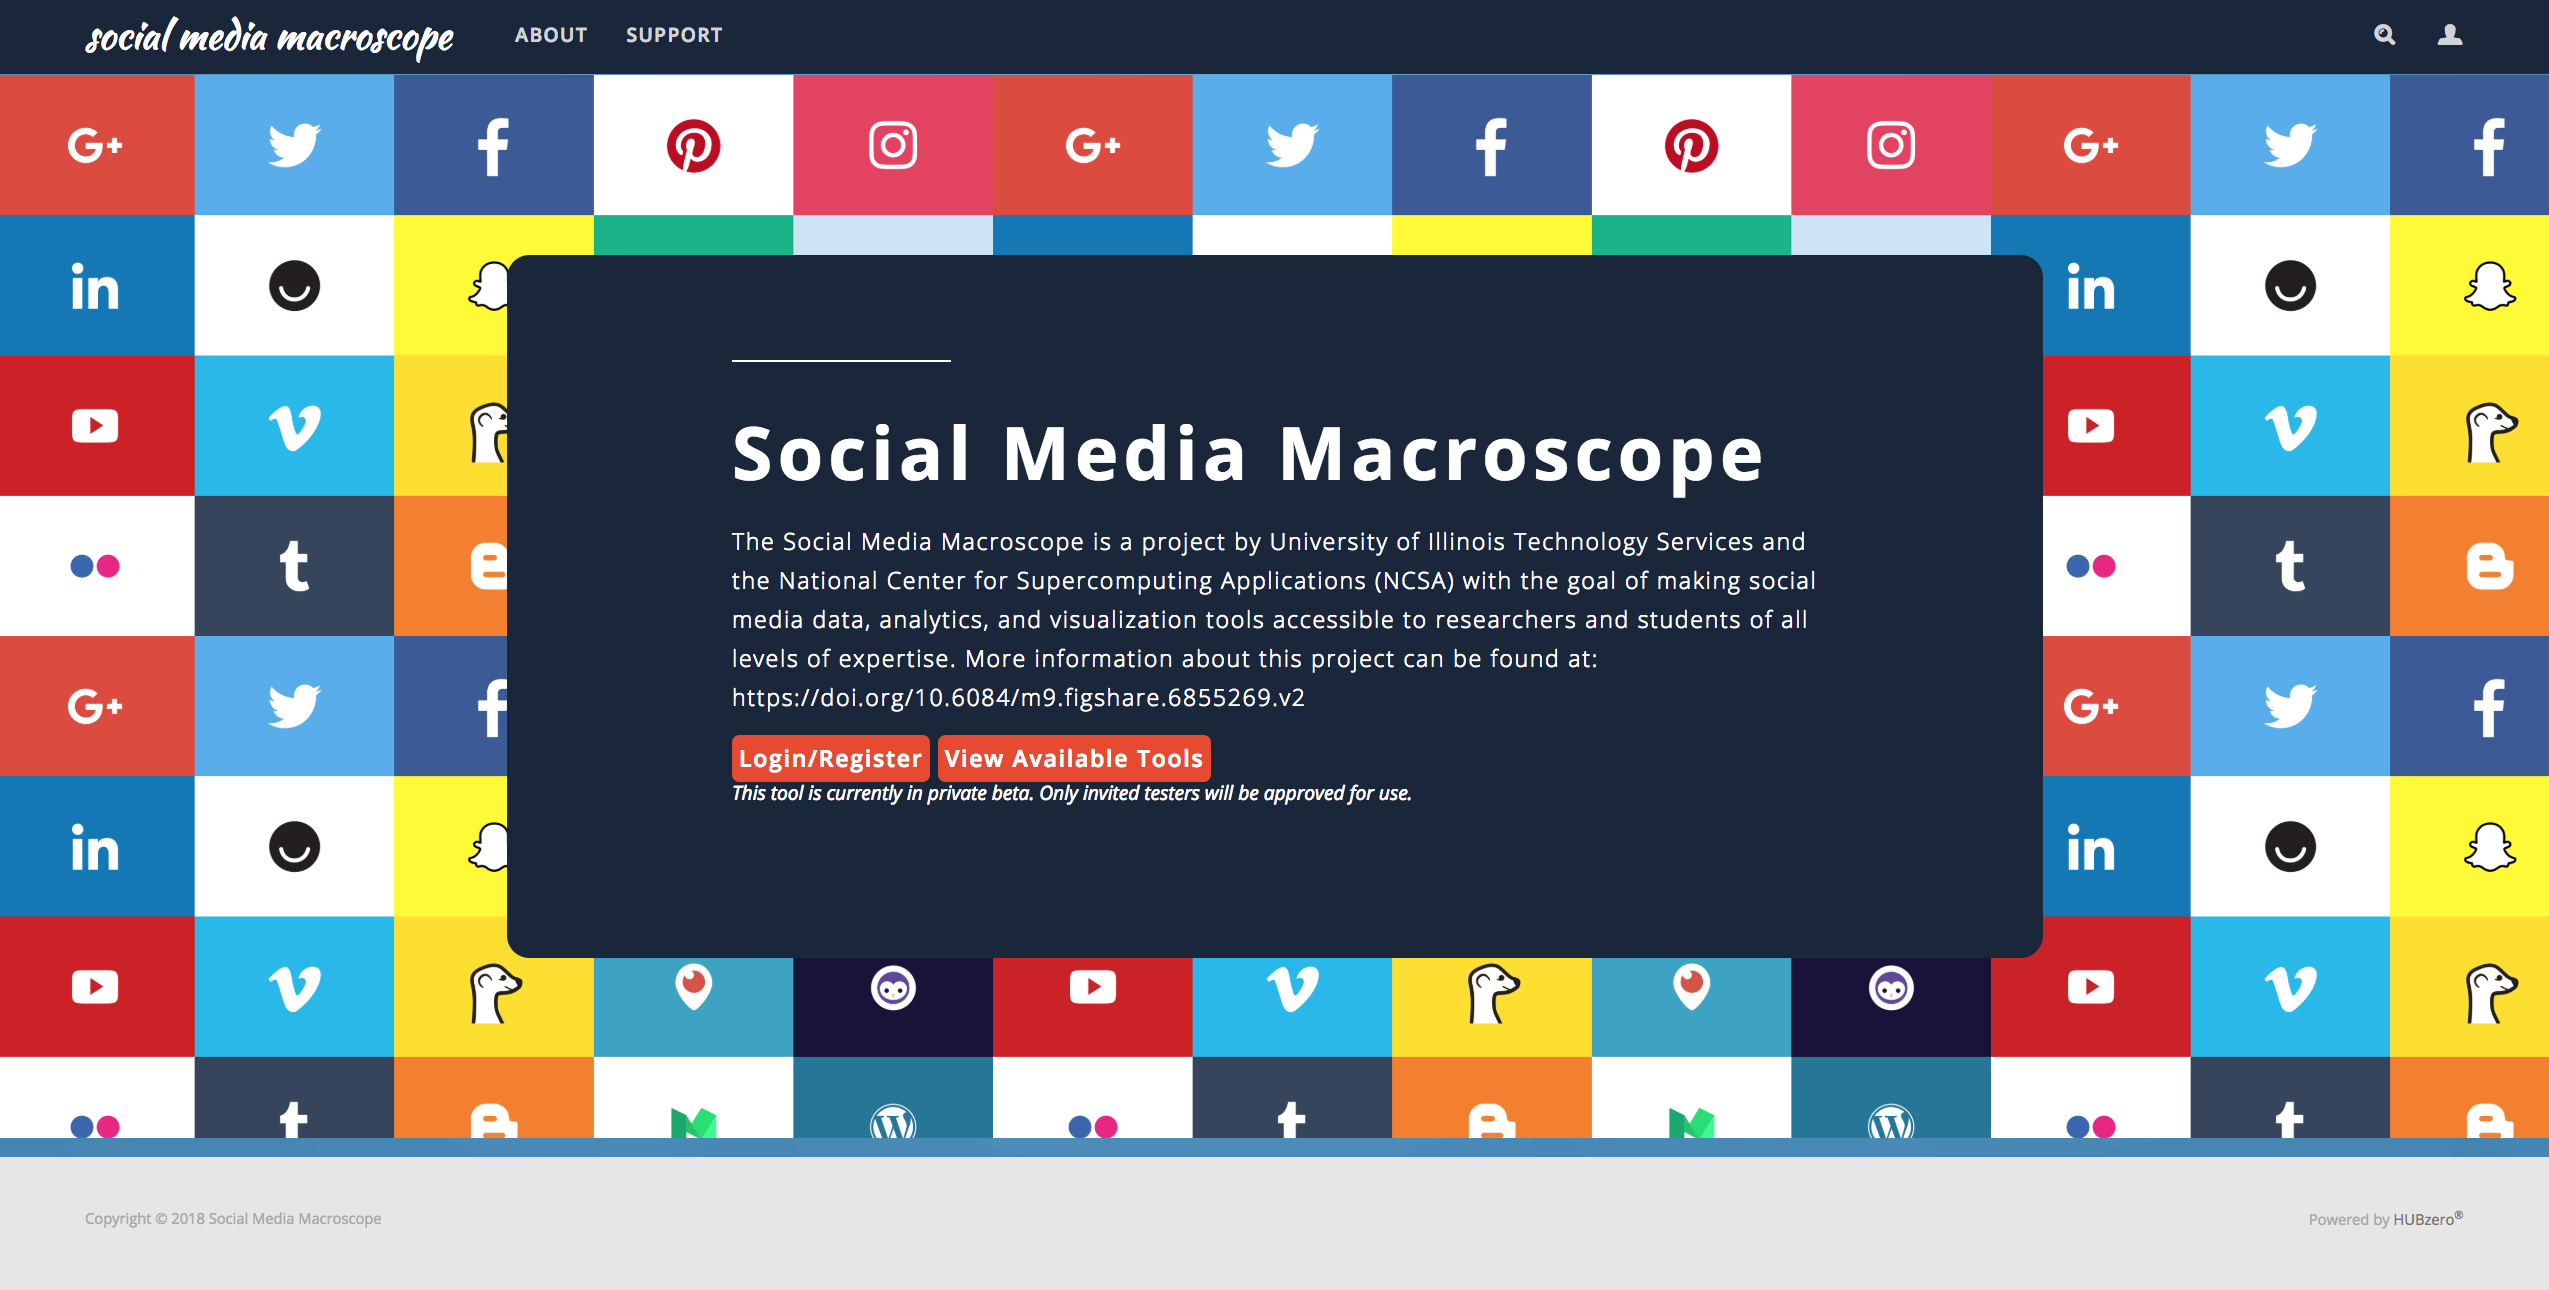 Social Media Macroscope